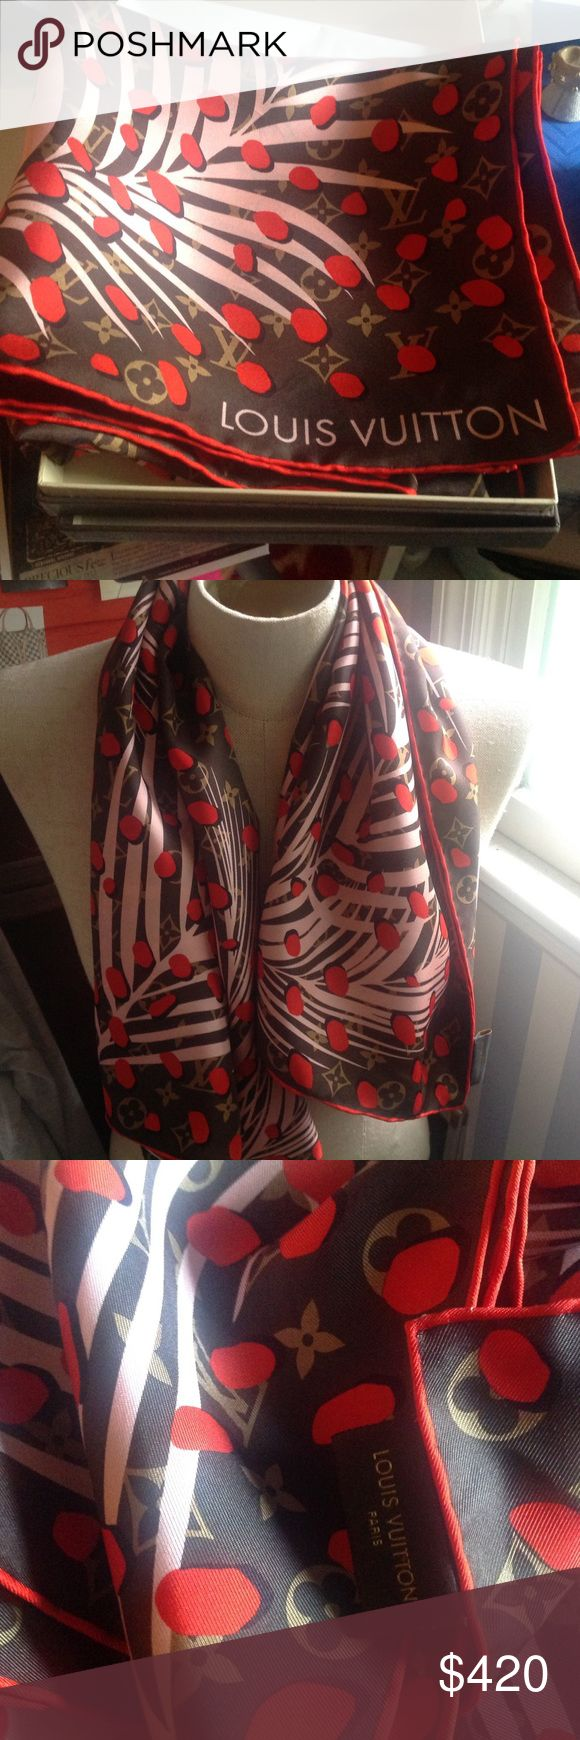 Louis Vuitton Jungle Print Large Scarf Worn once! Louis Vuitton Jungle Print Monogram Scarf in Large from 2016 Collection. Made in Italy. Can be worn a variety of ways. Comes with Original LV Box. Louis Vuitton Accessories Scarves & Wraps